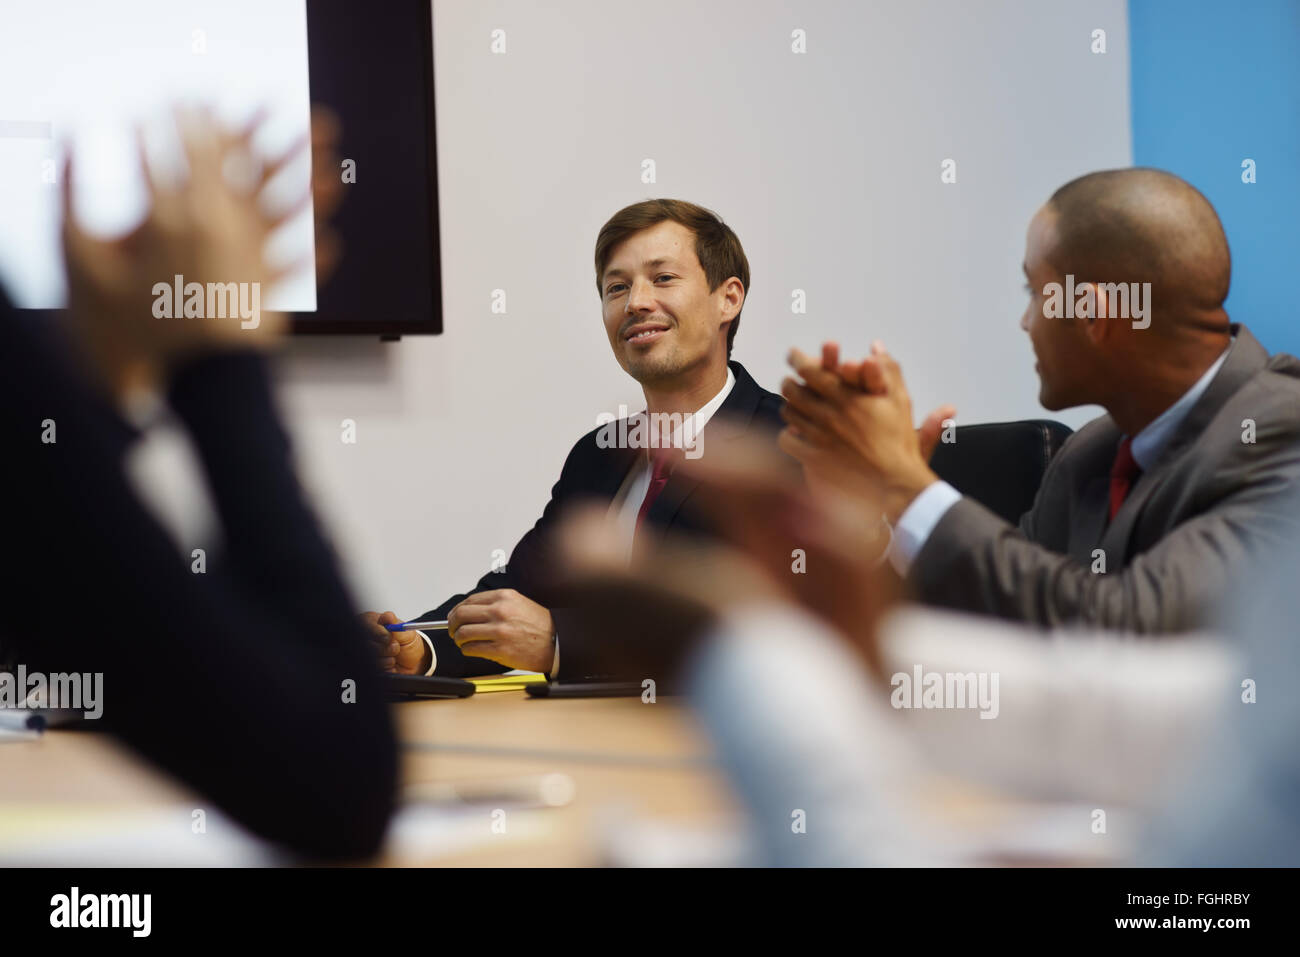 Group of business people meeting in corporate conference room, applauding at a coworker during his presentation. - Stock Image